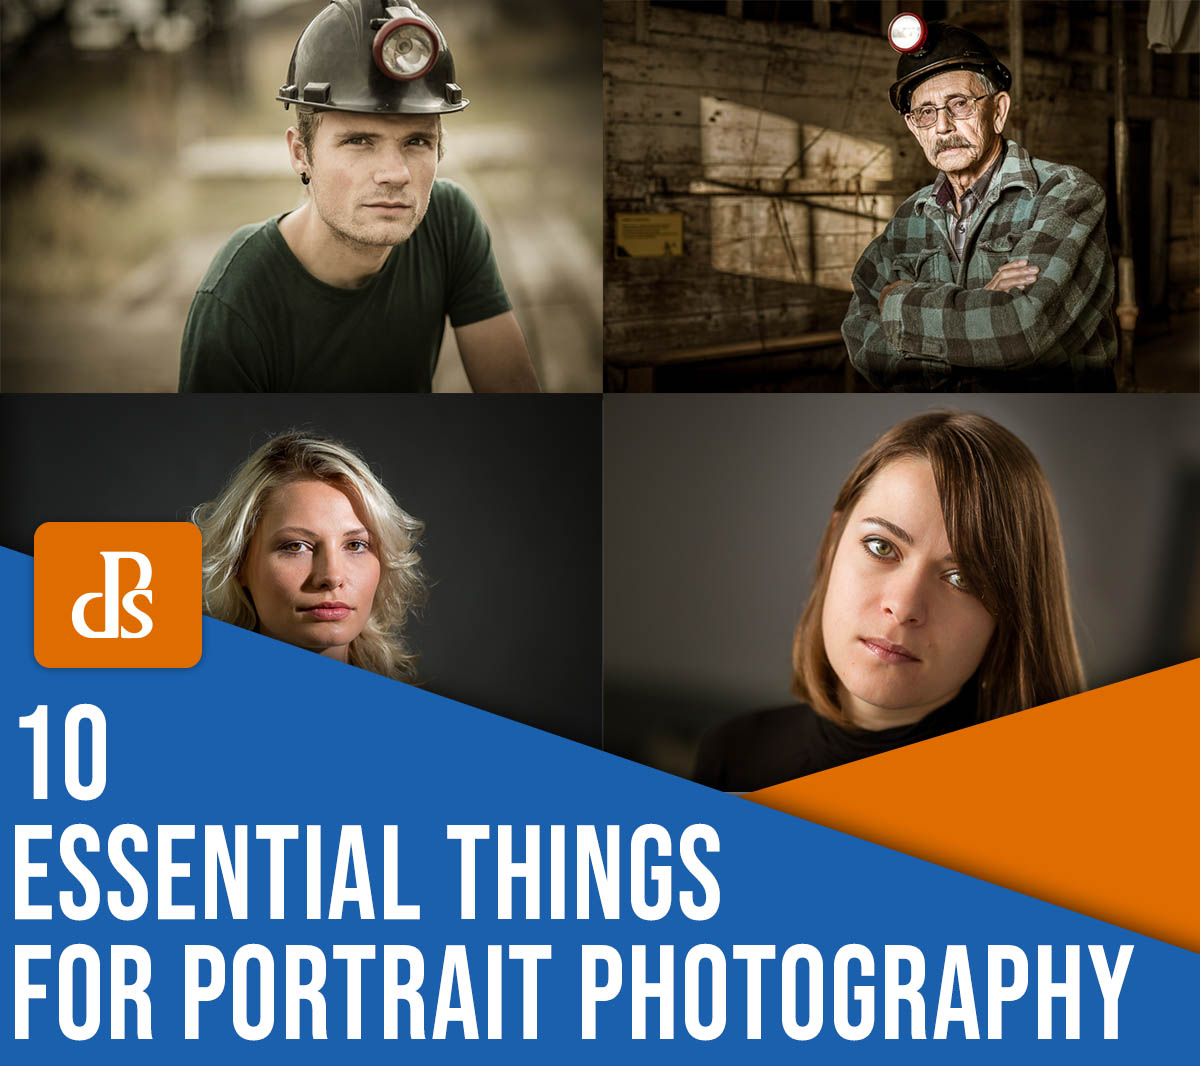 10 essential things for portrait photography